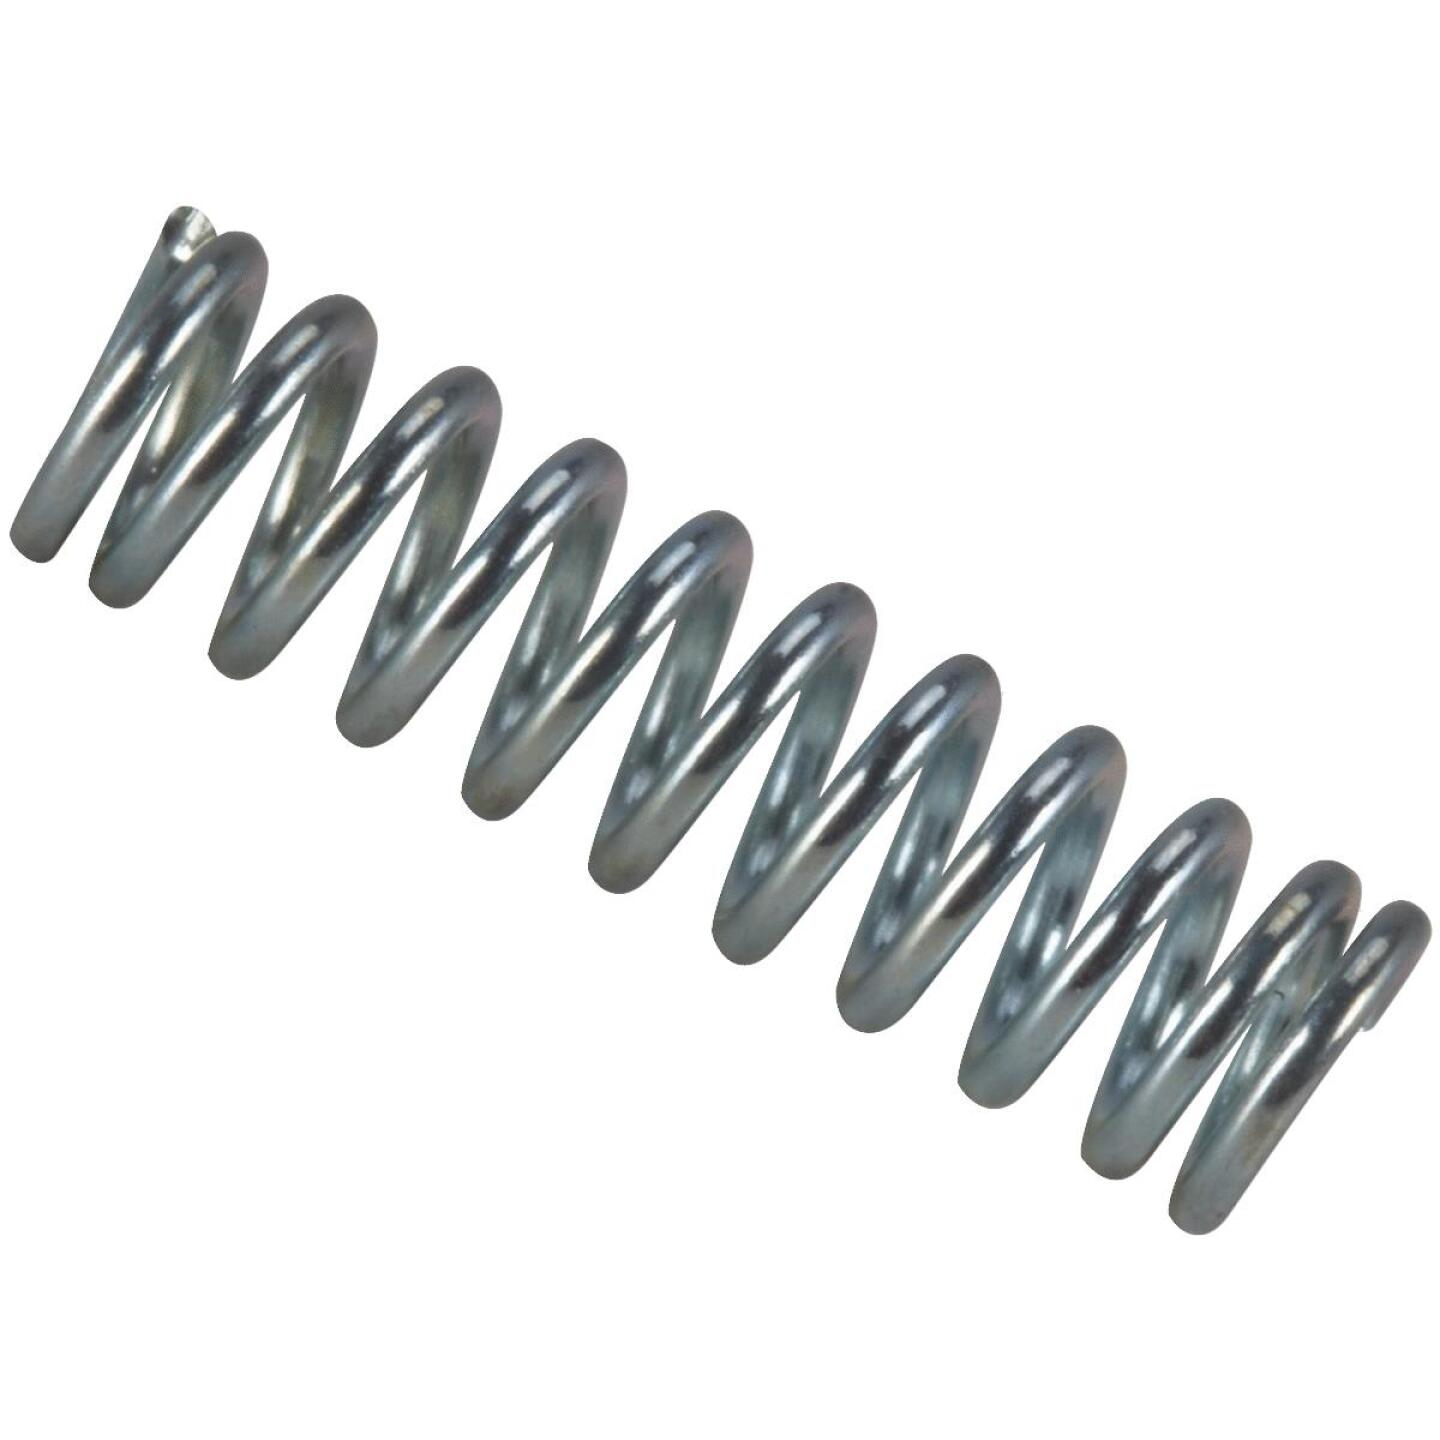 Century Spring 2 In. x 5/16 In. Compression Spring (4 Count) Image 1